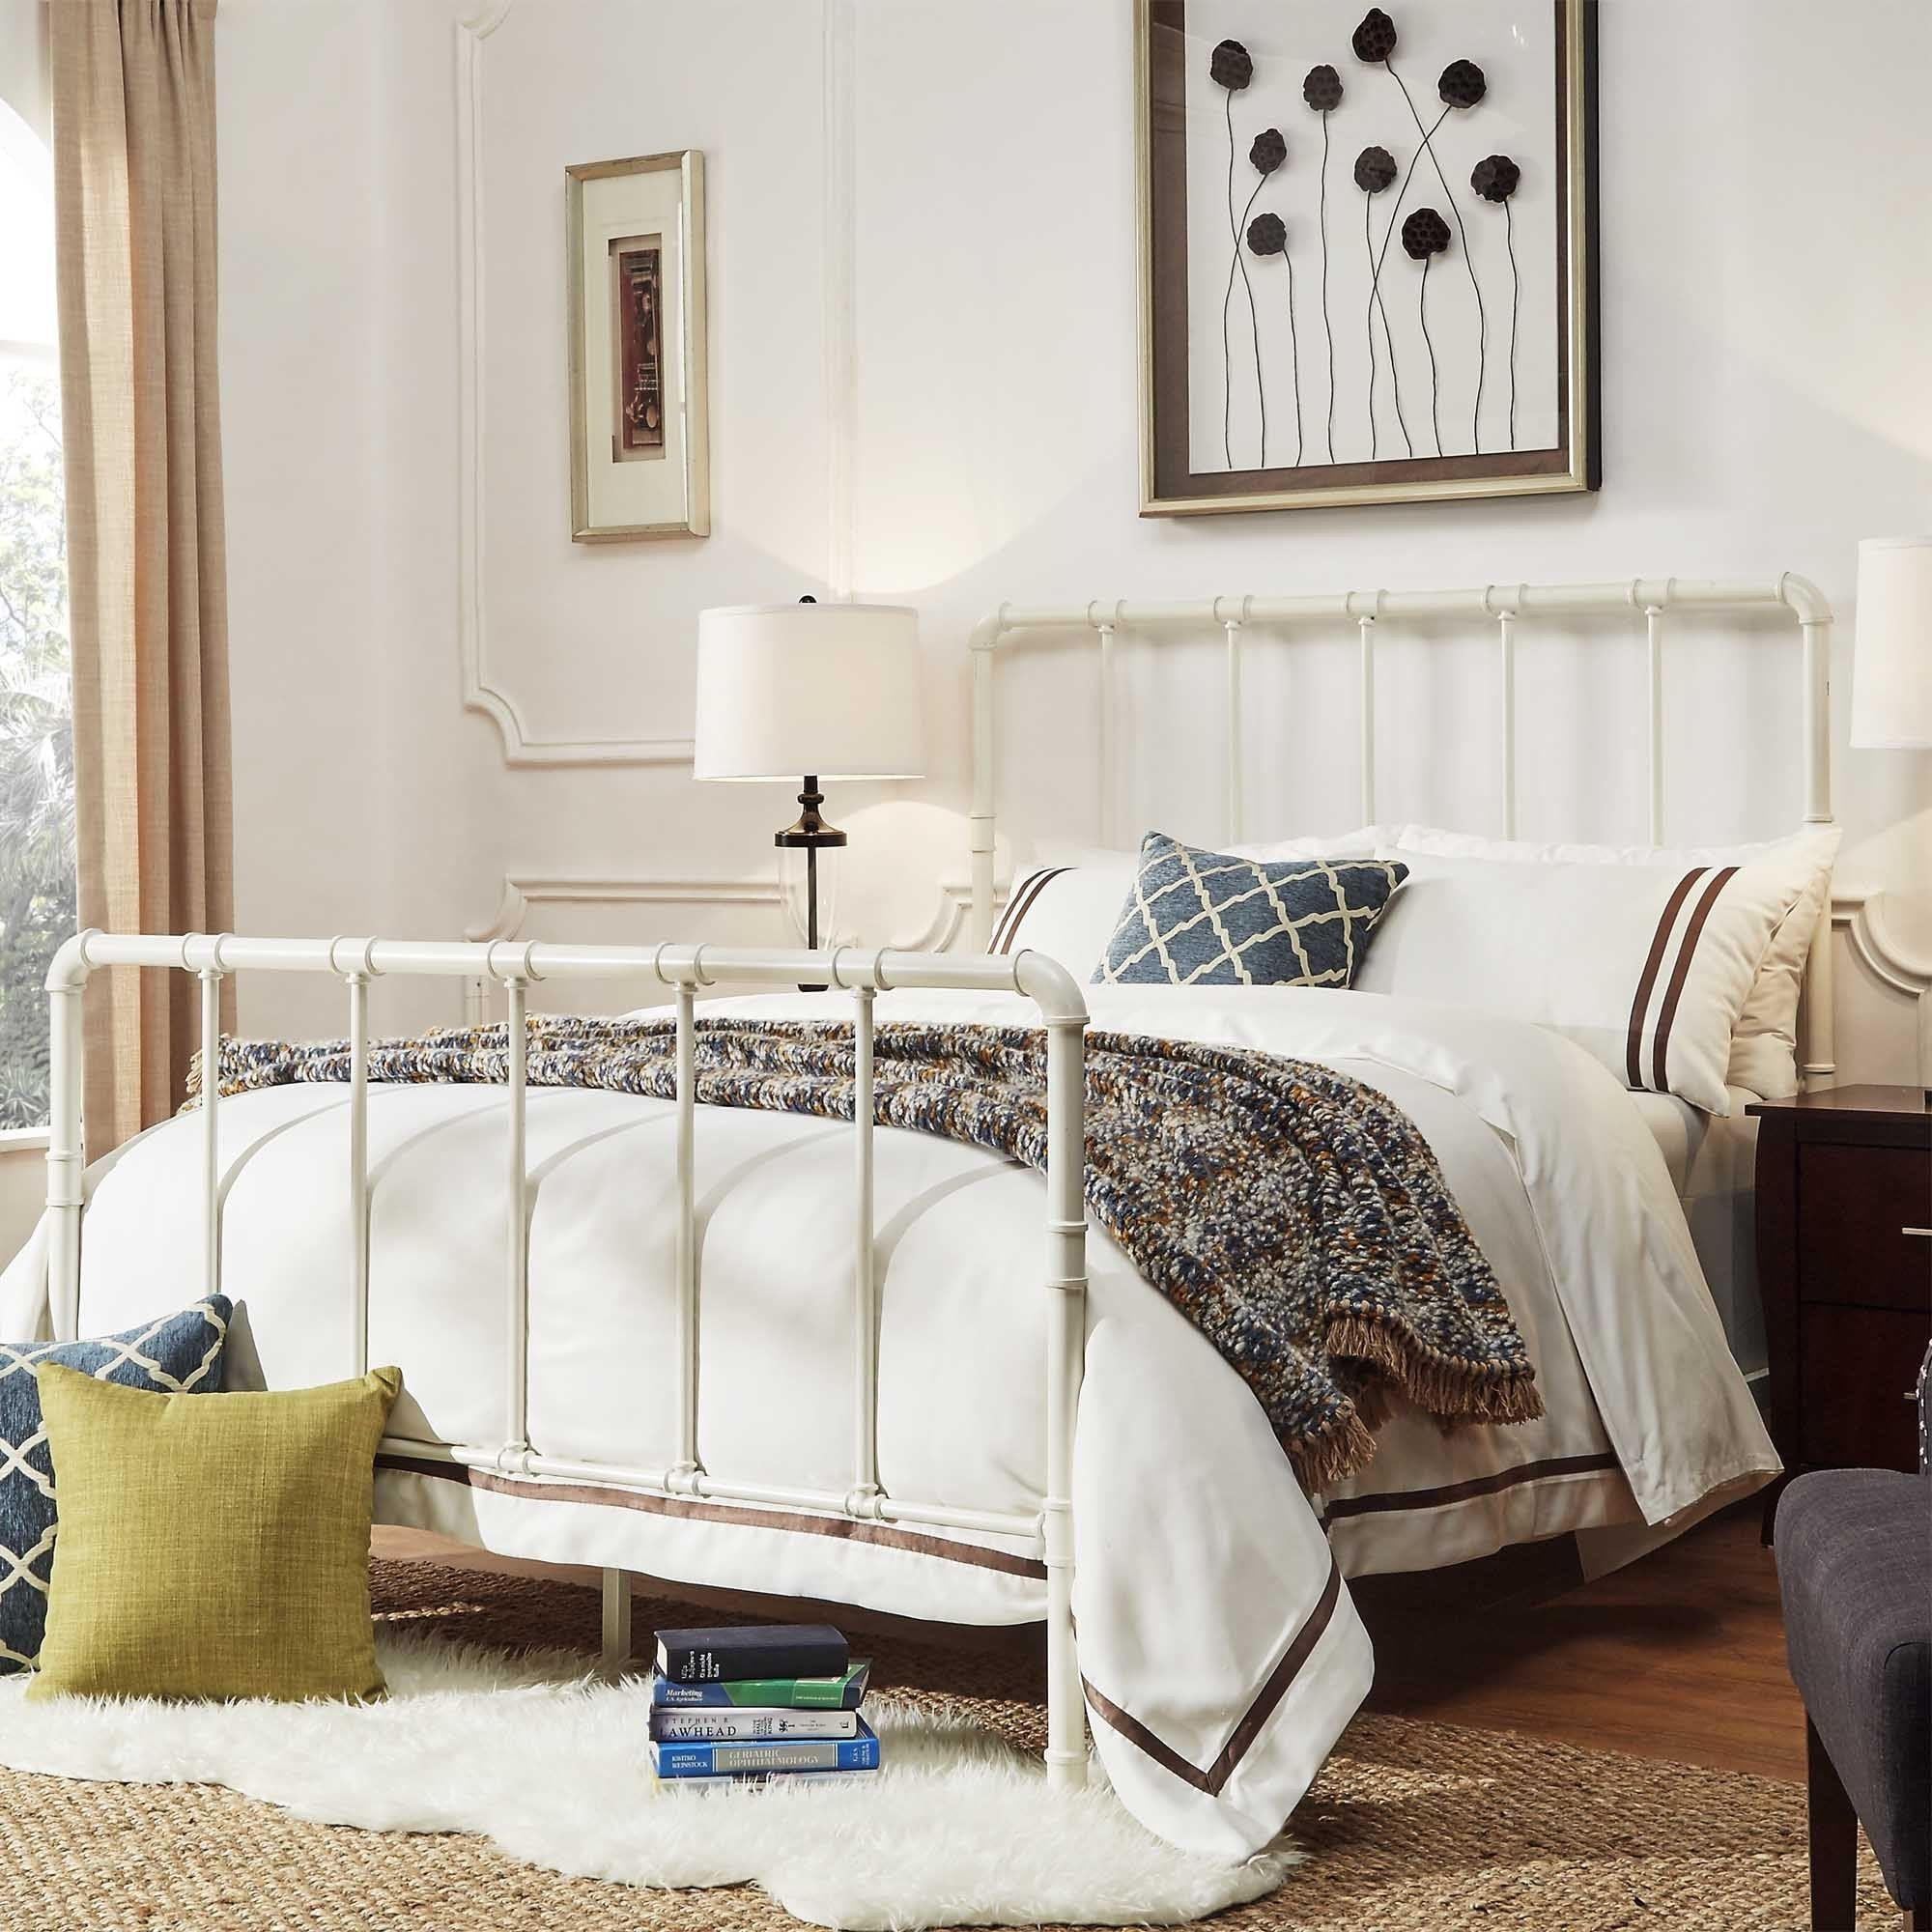 Shabby Chic Bedroom Furniture | Find Great Furniture Deals ...